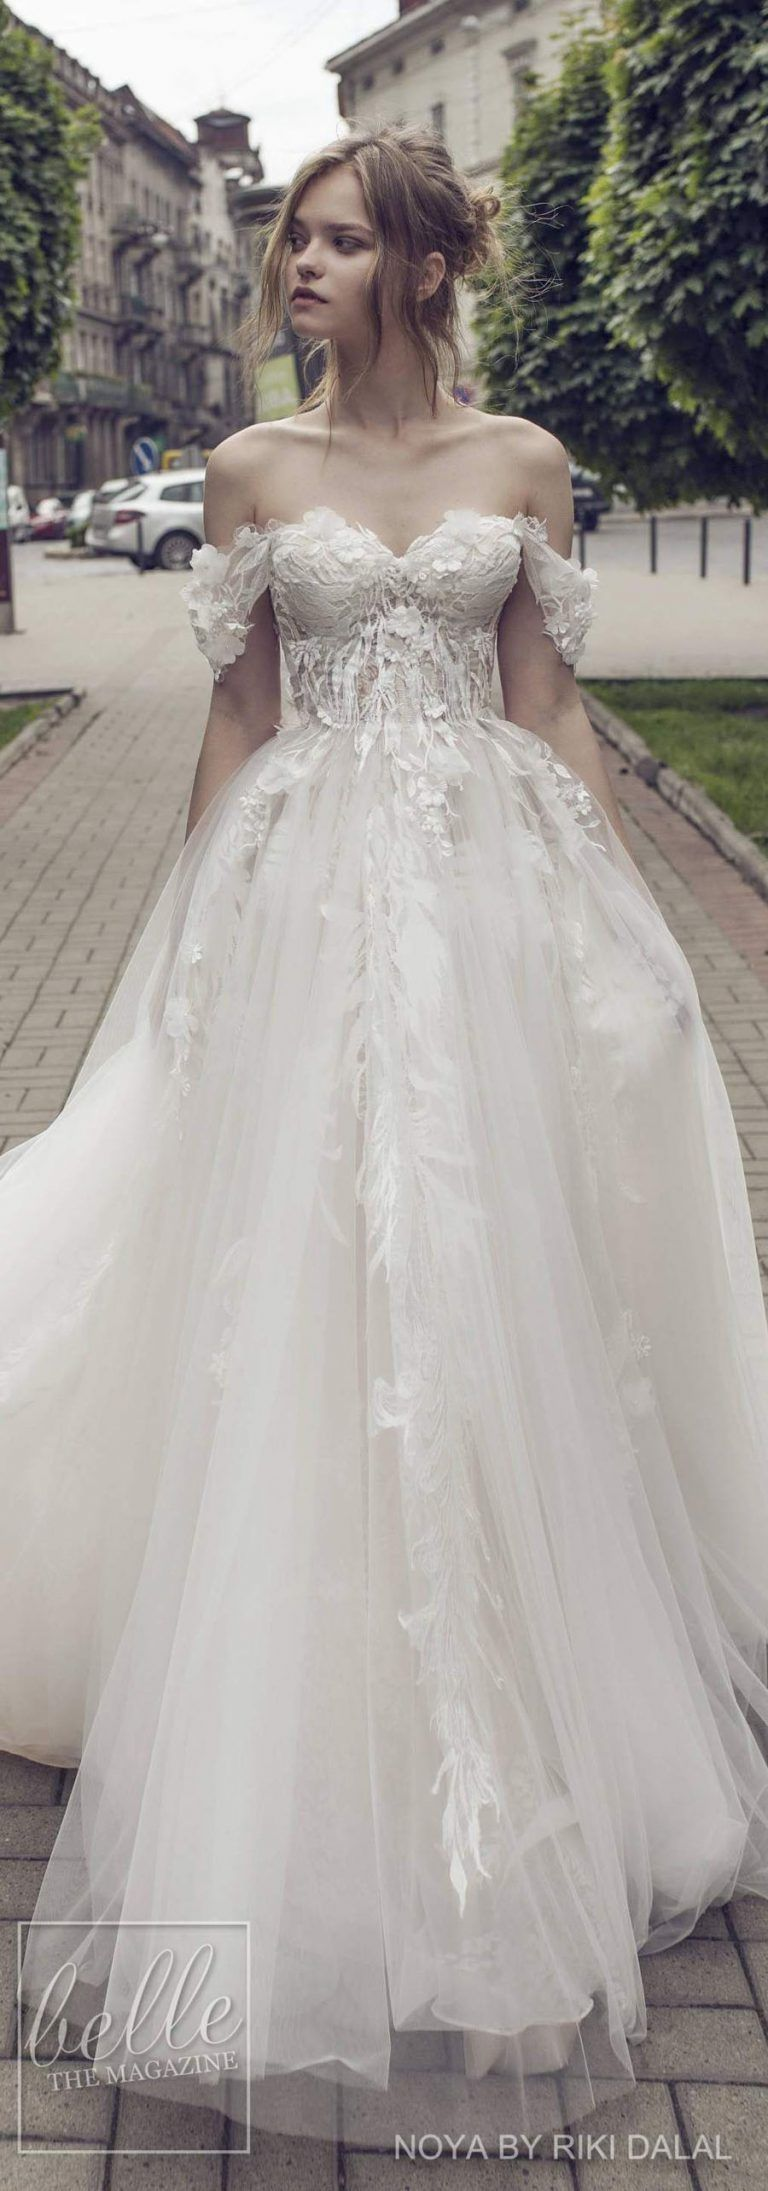 Noya by riki dalal bridal shakespeare collection vestido de